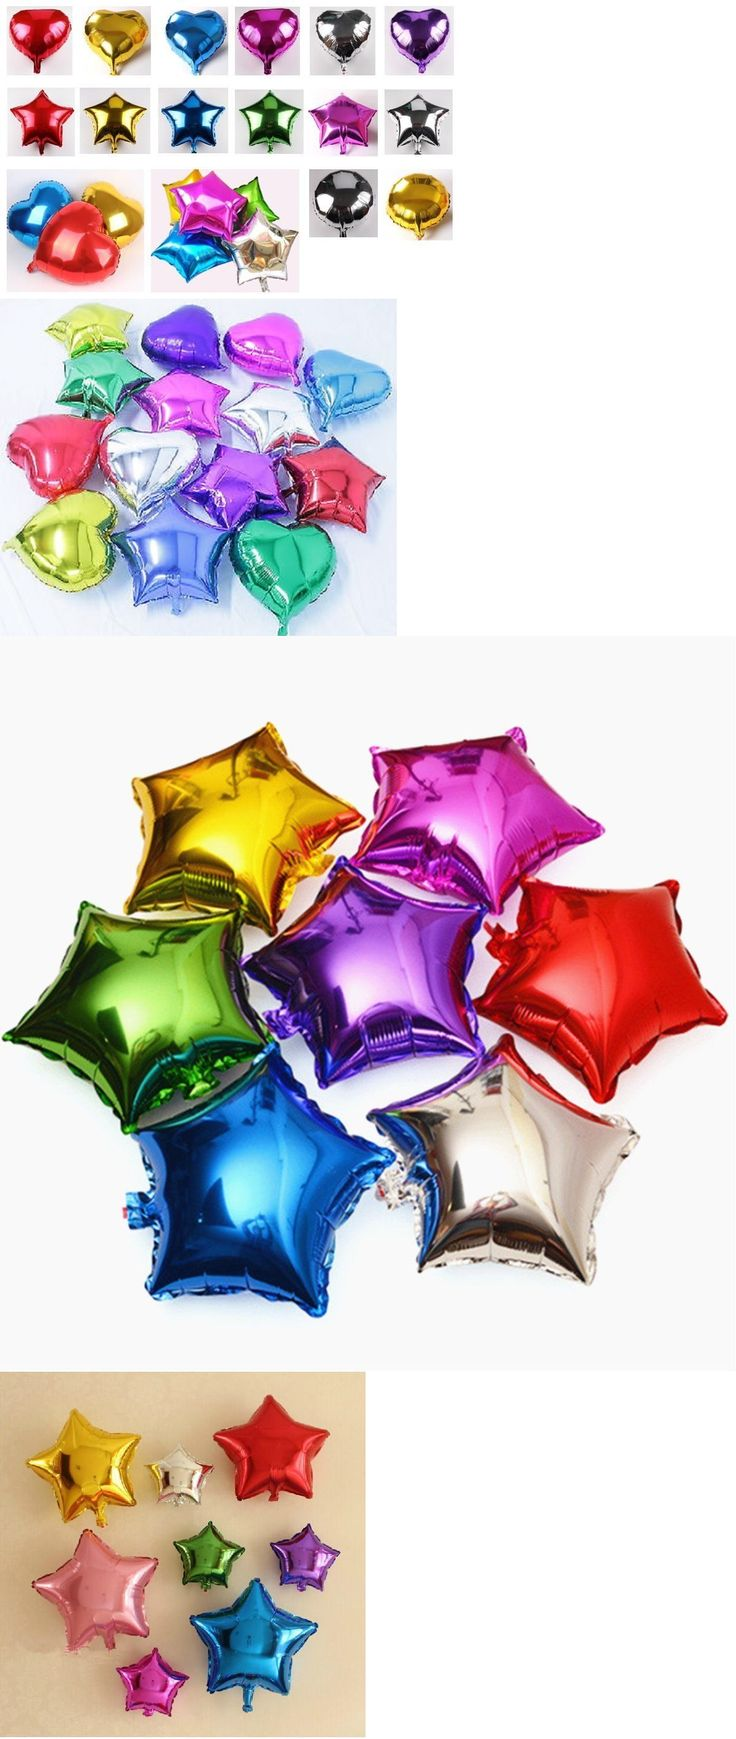 Balloons 26384: 1-24X 10 18 Heart Round Star Solid Foil Balloon Helium Baby Shower Bride Bday -> BUY IT NOW ONLY: $34.95 on eBay!